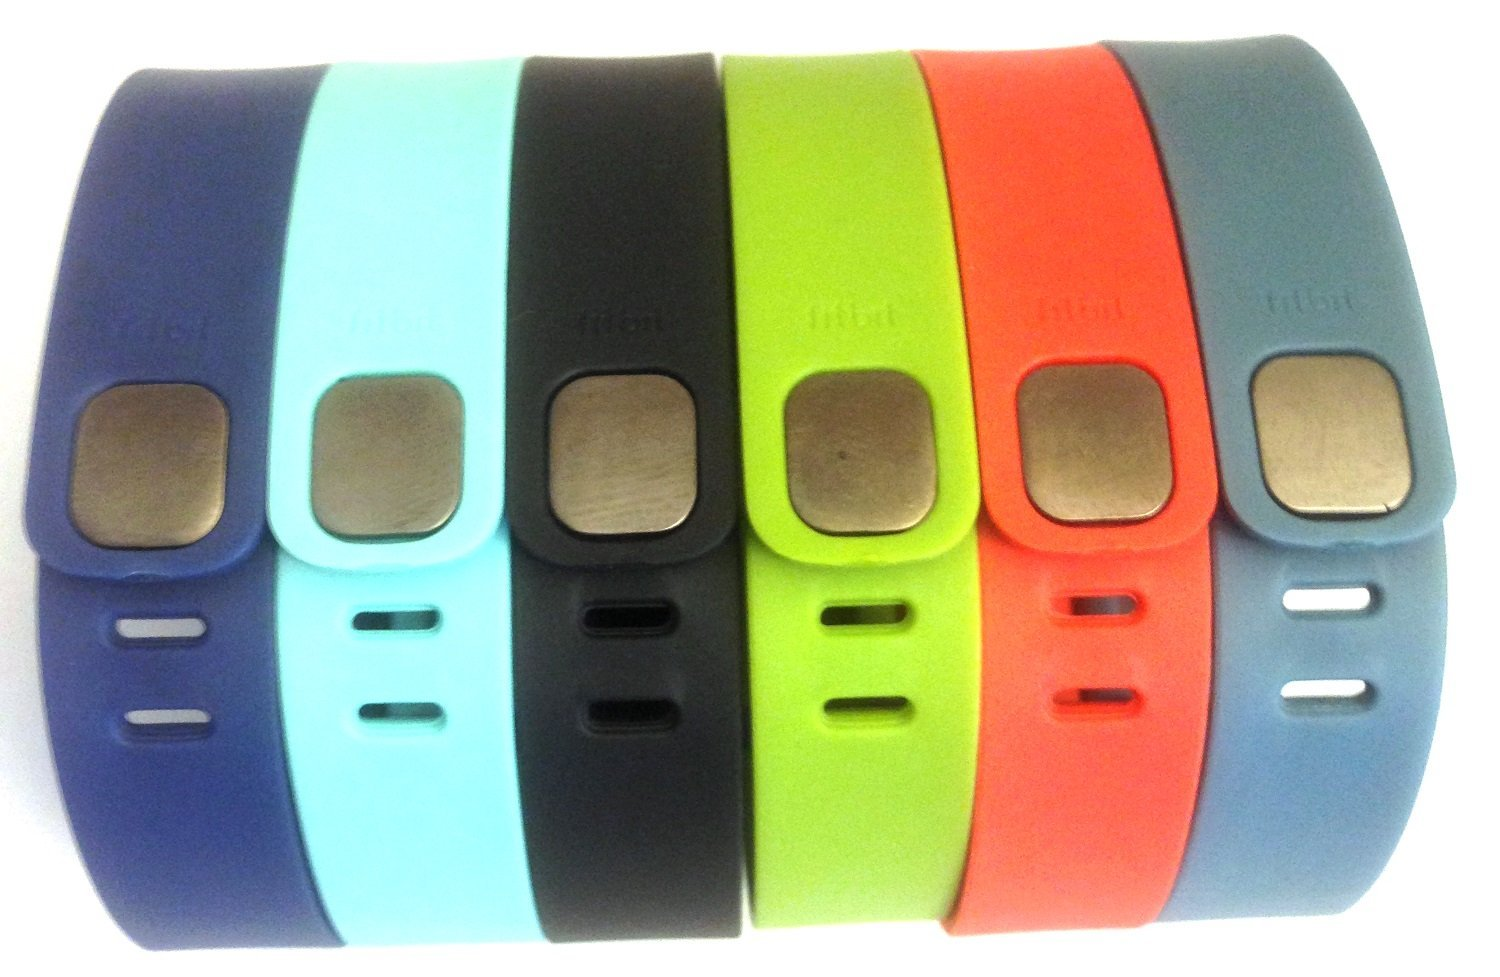 Set 6 Large L 1pc Navy 1pc Lime Green 1pc Teal (Blue/Green) 1pc Black 1pc Red (Tangerine) 1pc Slate (Blue/Grey) Replacement Bands with Clasps for Fitbit FLEX Only /No tracker/ Wireless Activity Bracelet Sport Wristband Fit Bit Flex Bracelet Sport Arm Band Armband